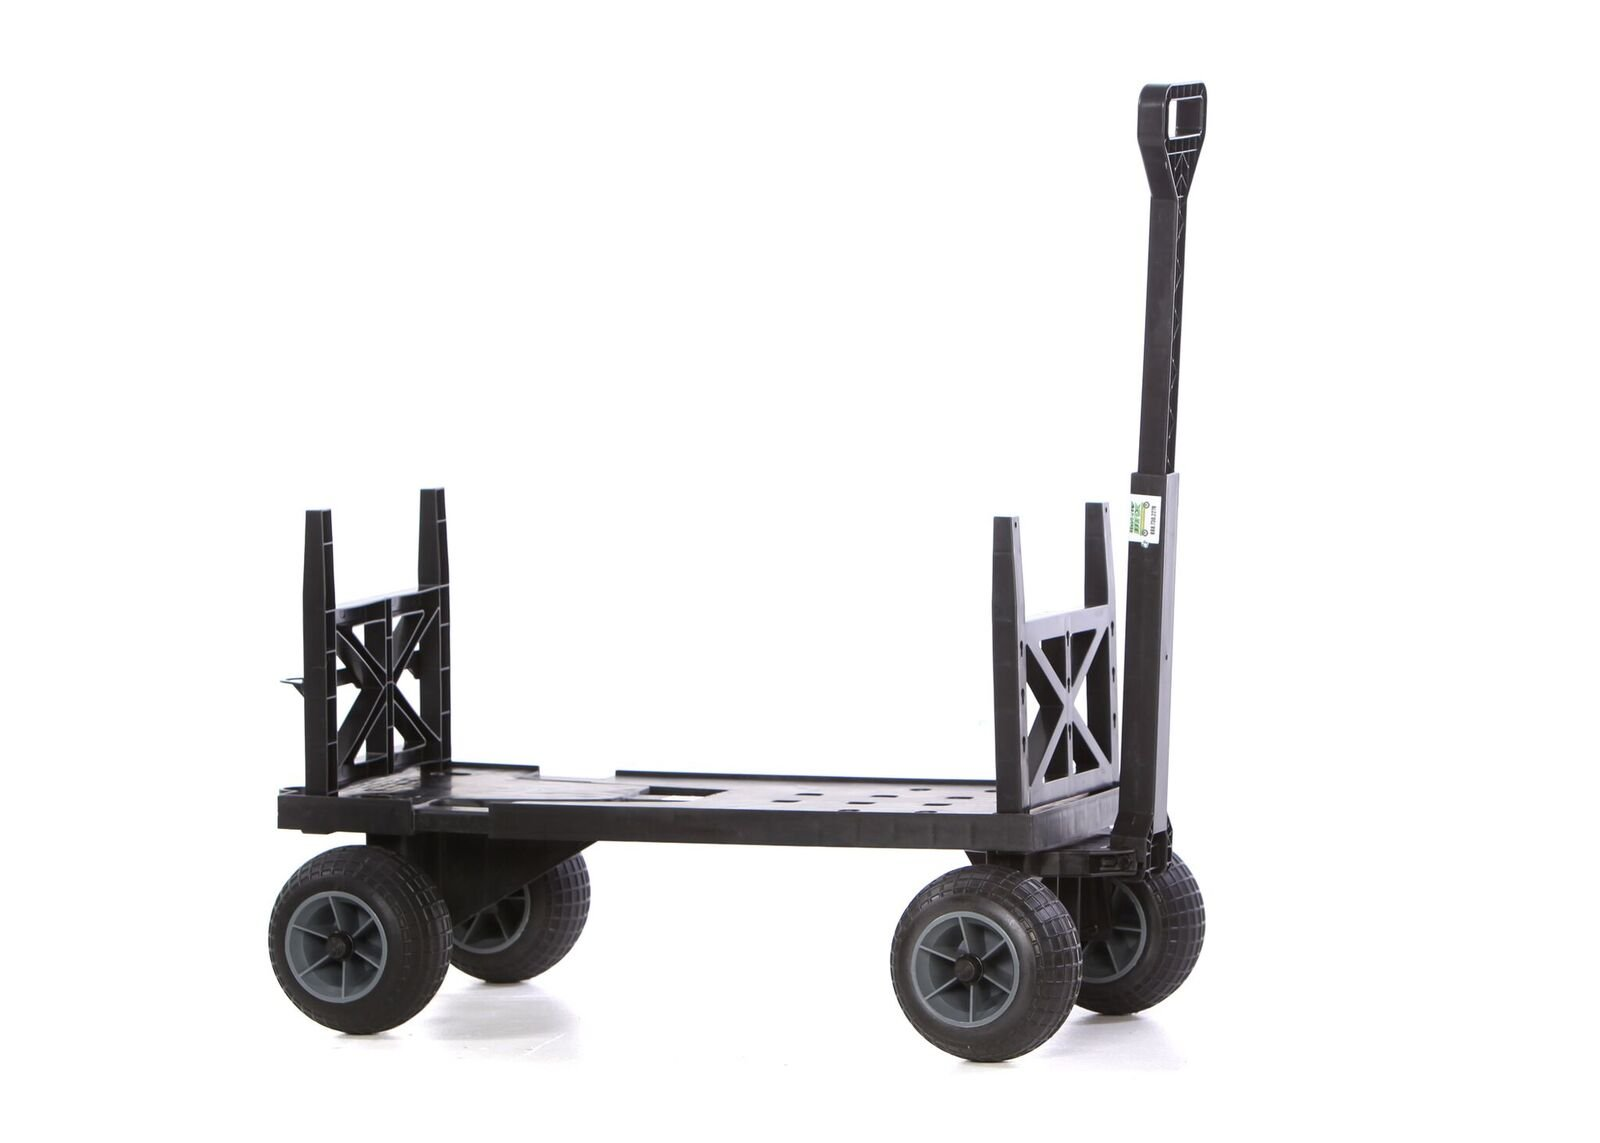 Mighty Max Cart Plus One Sports Utility Cart with All-Terrain Weatherproof Wheels